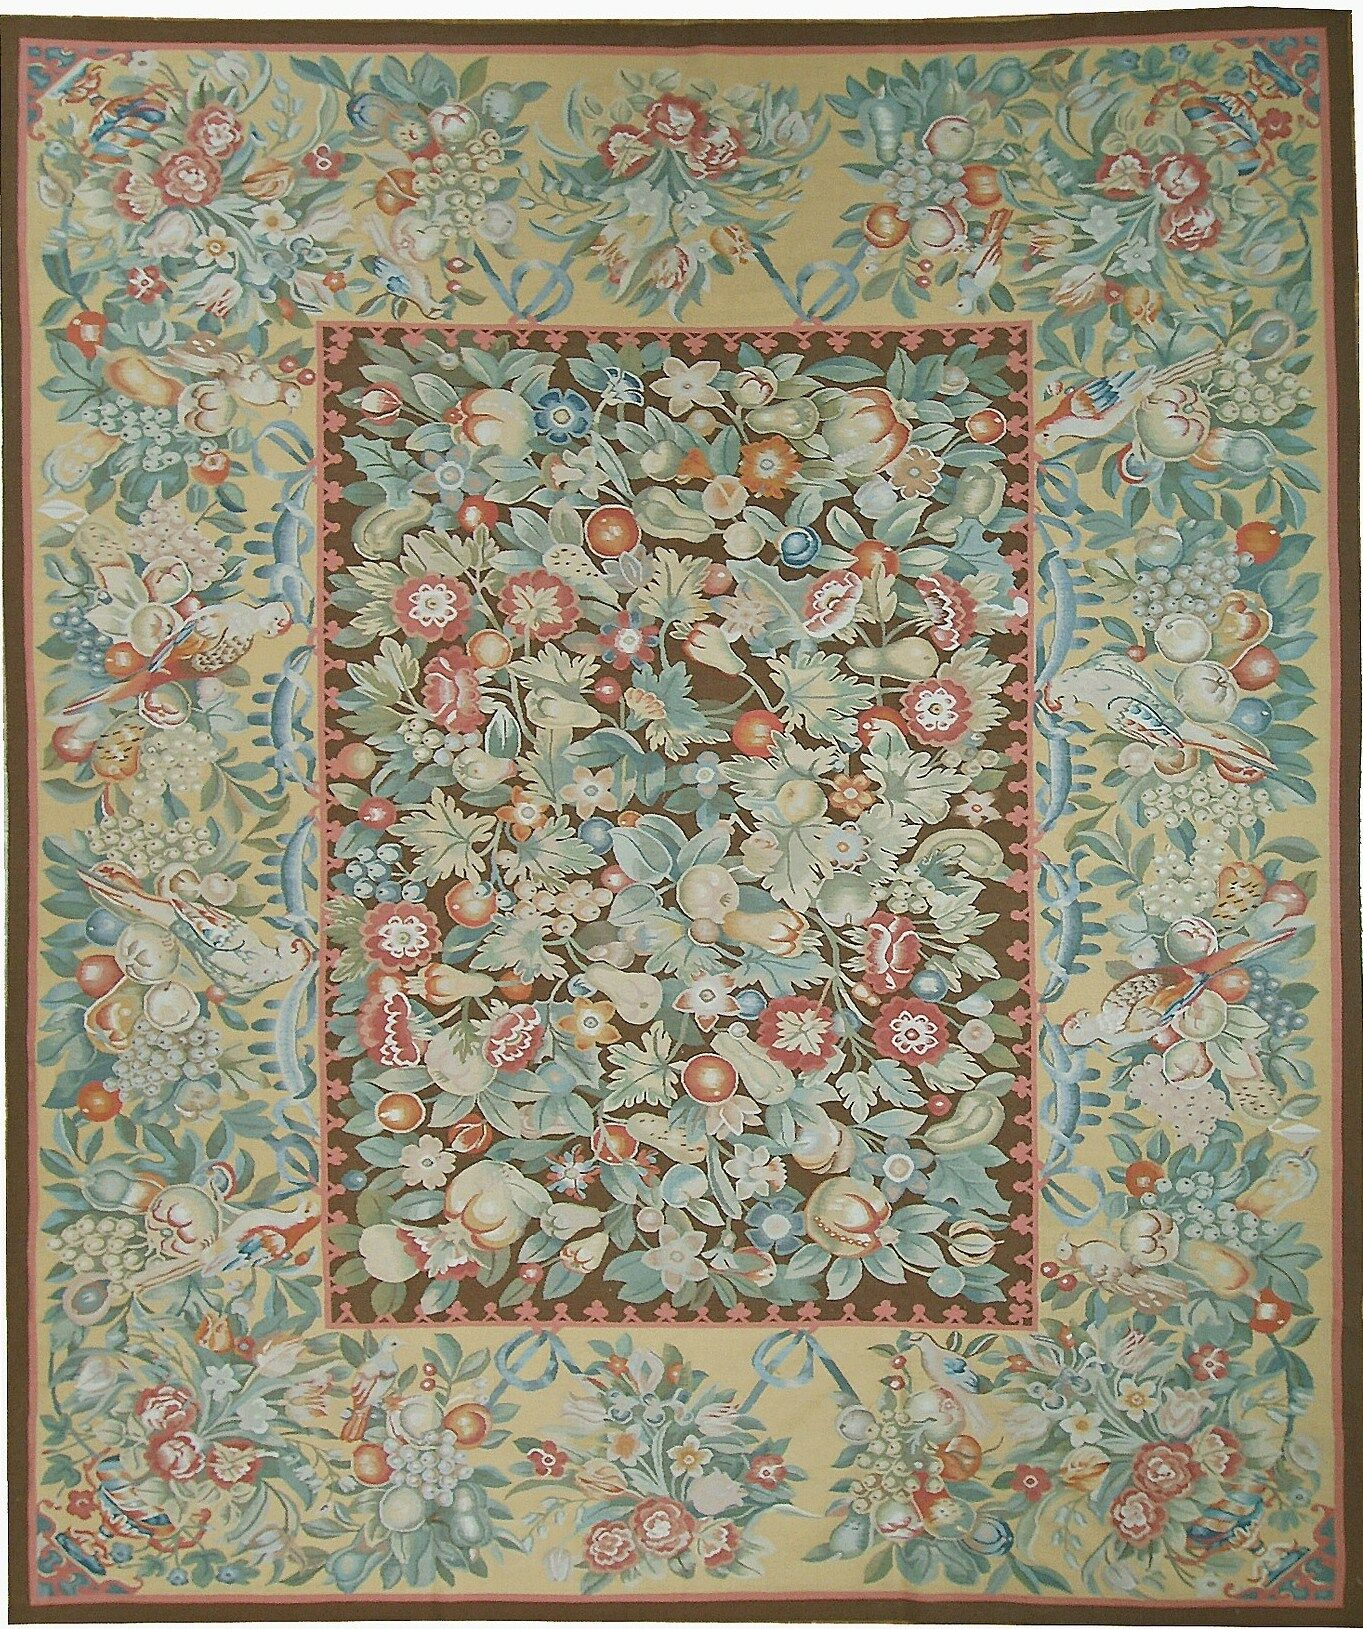 One-of-a-Kind Aubusson Hand Woven Wool Green/Beige Area Rug Rug Size: Rectangle 10'1